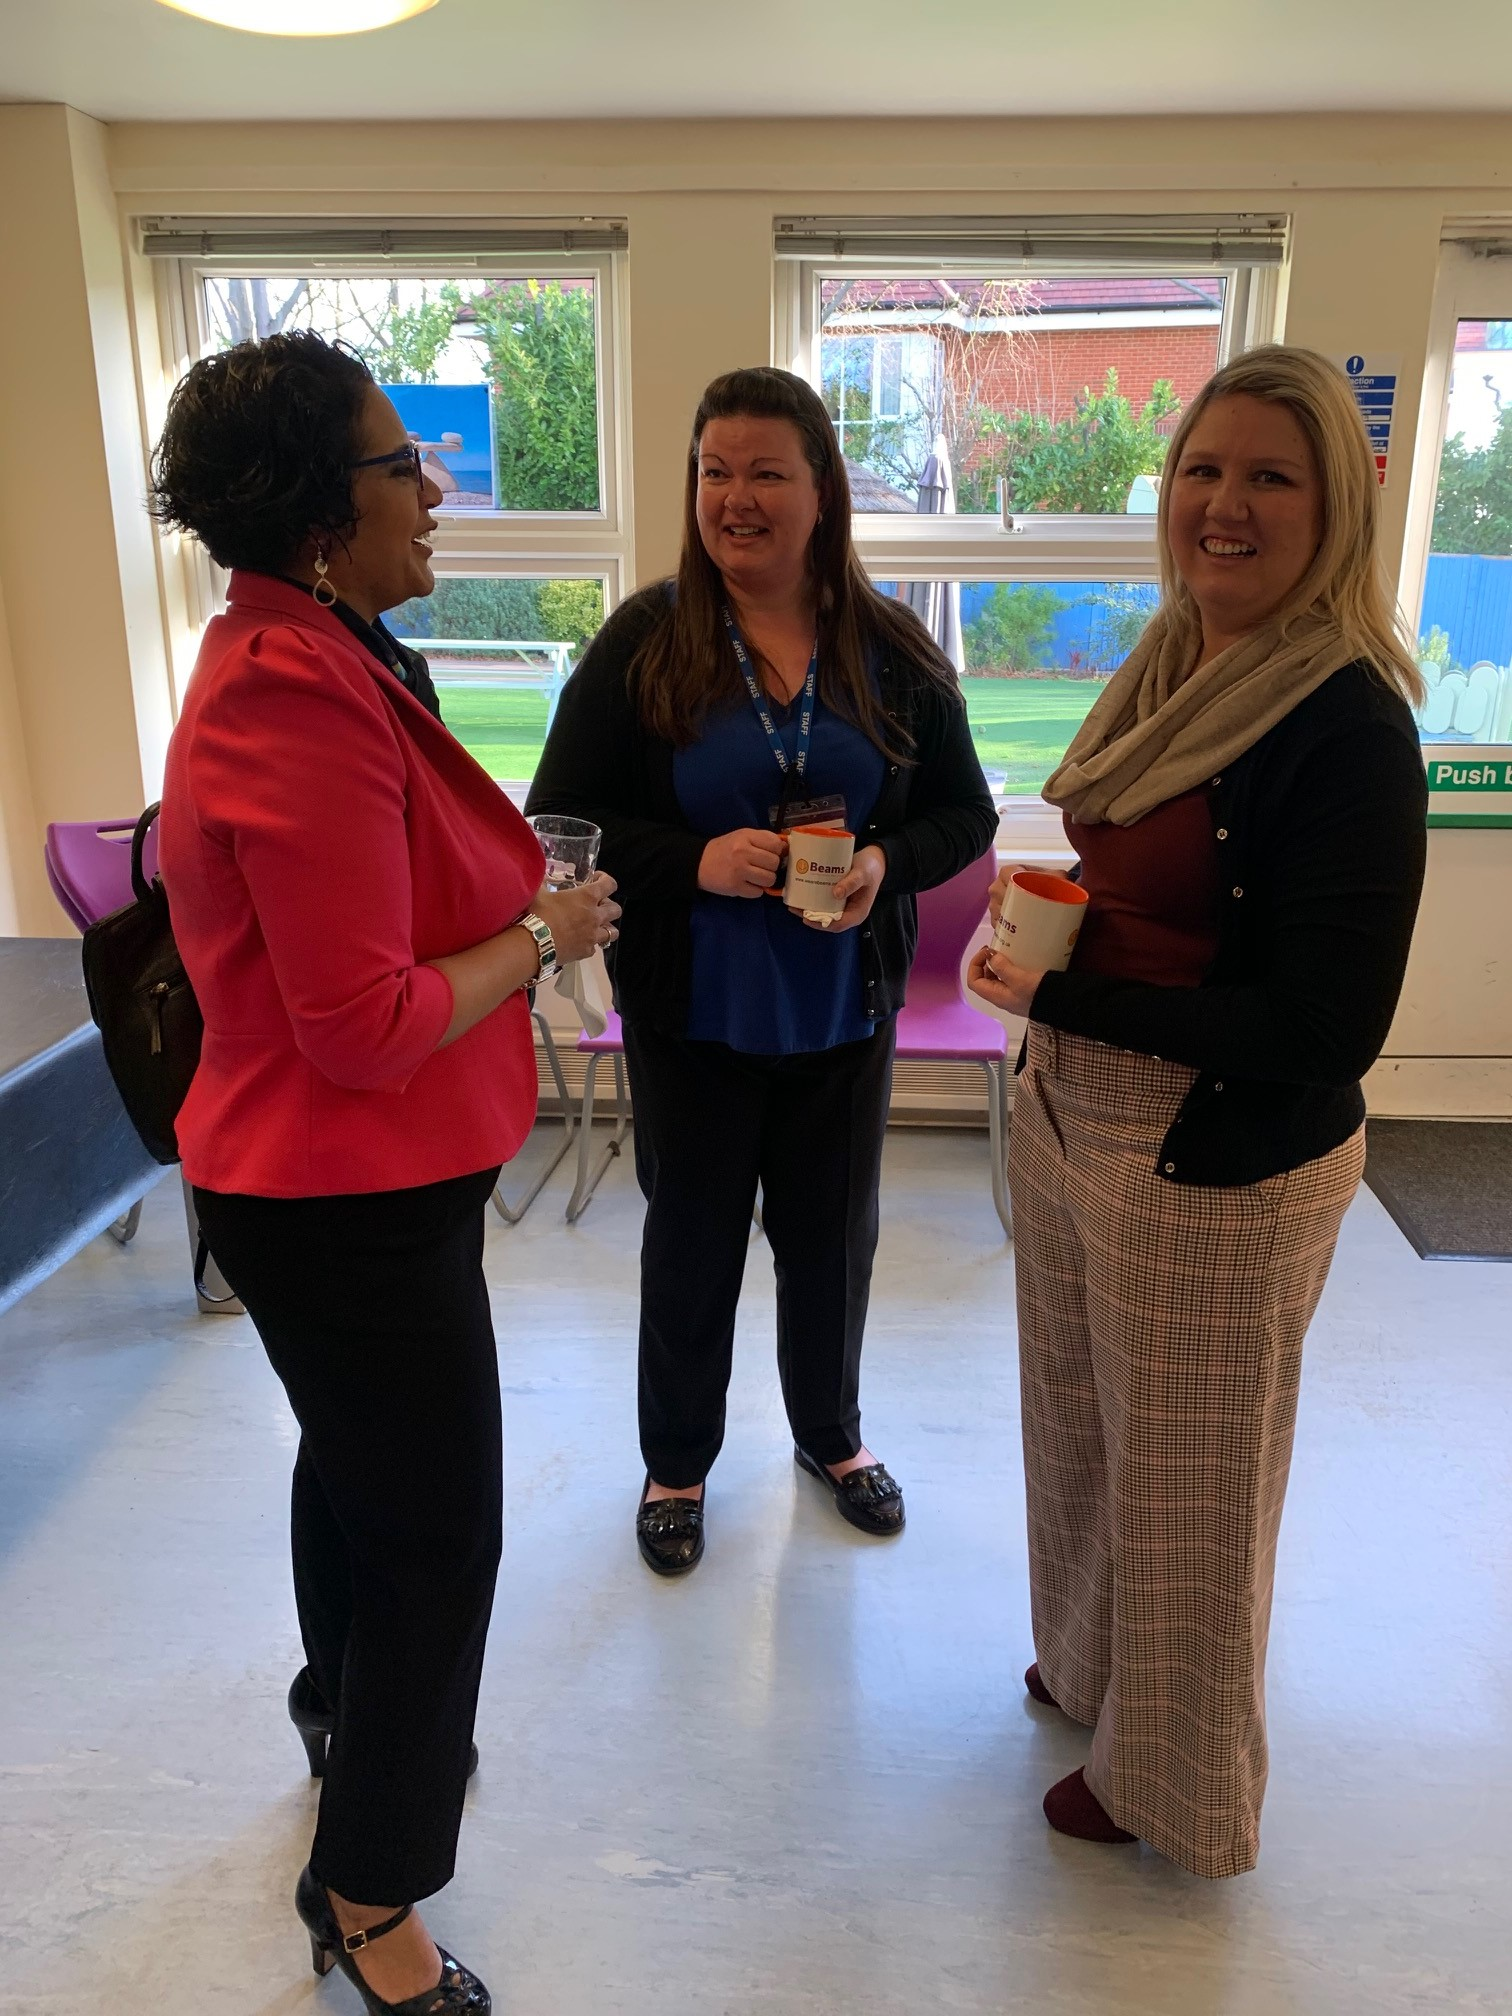 Beams Wellbeing Day